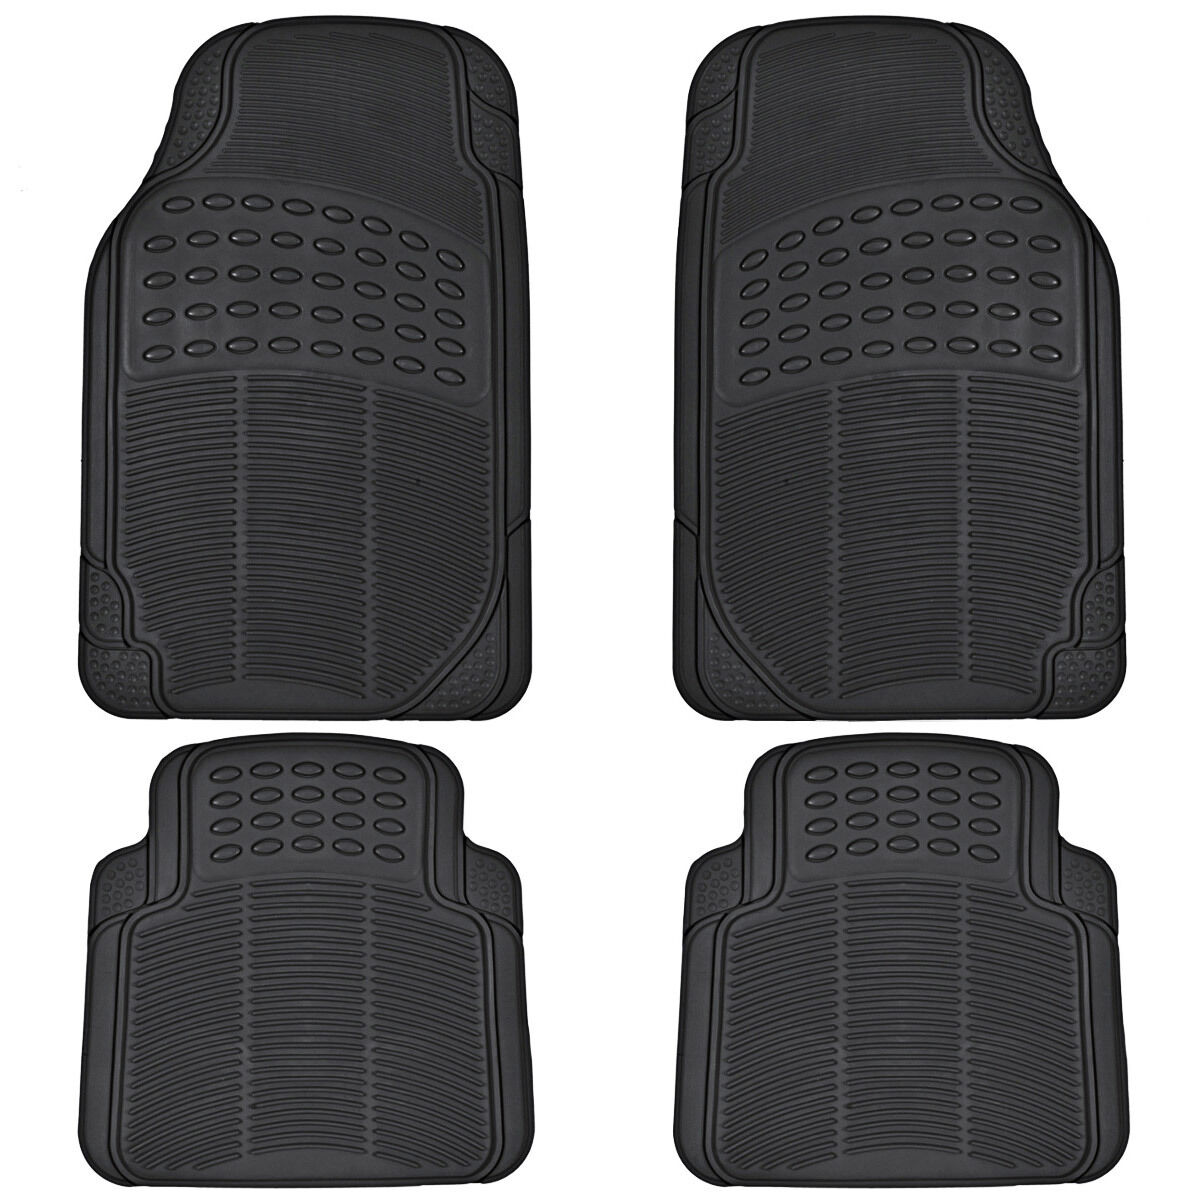 volkswagen products passat mats tailored rubber custom made for vw car floor